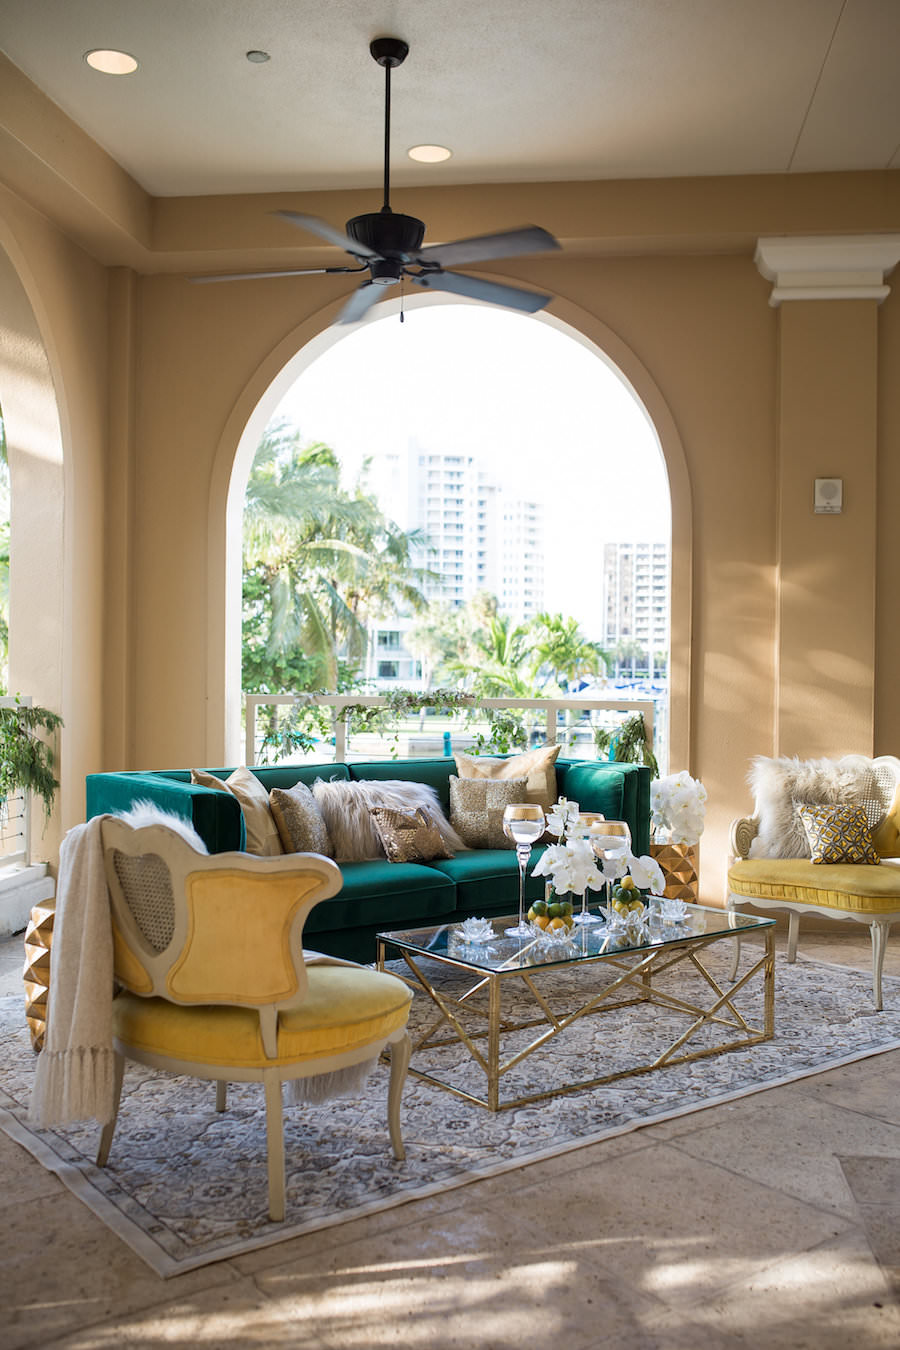 Outdoor Elegant, Sophisticated Vintage Wedding Reception Ideas & Inspiration with Mustard Yellow Vintage Chair and Emerald Green Velvet Couch | Wedding Lounge Furniture | Sarasota Wedding Planner NK Productions